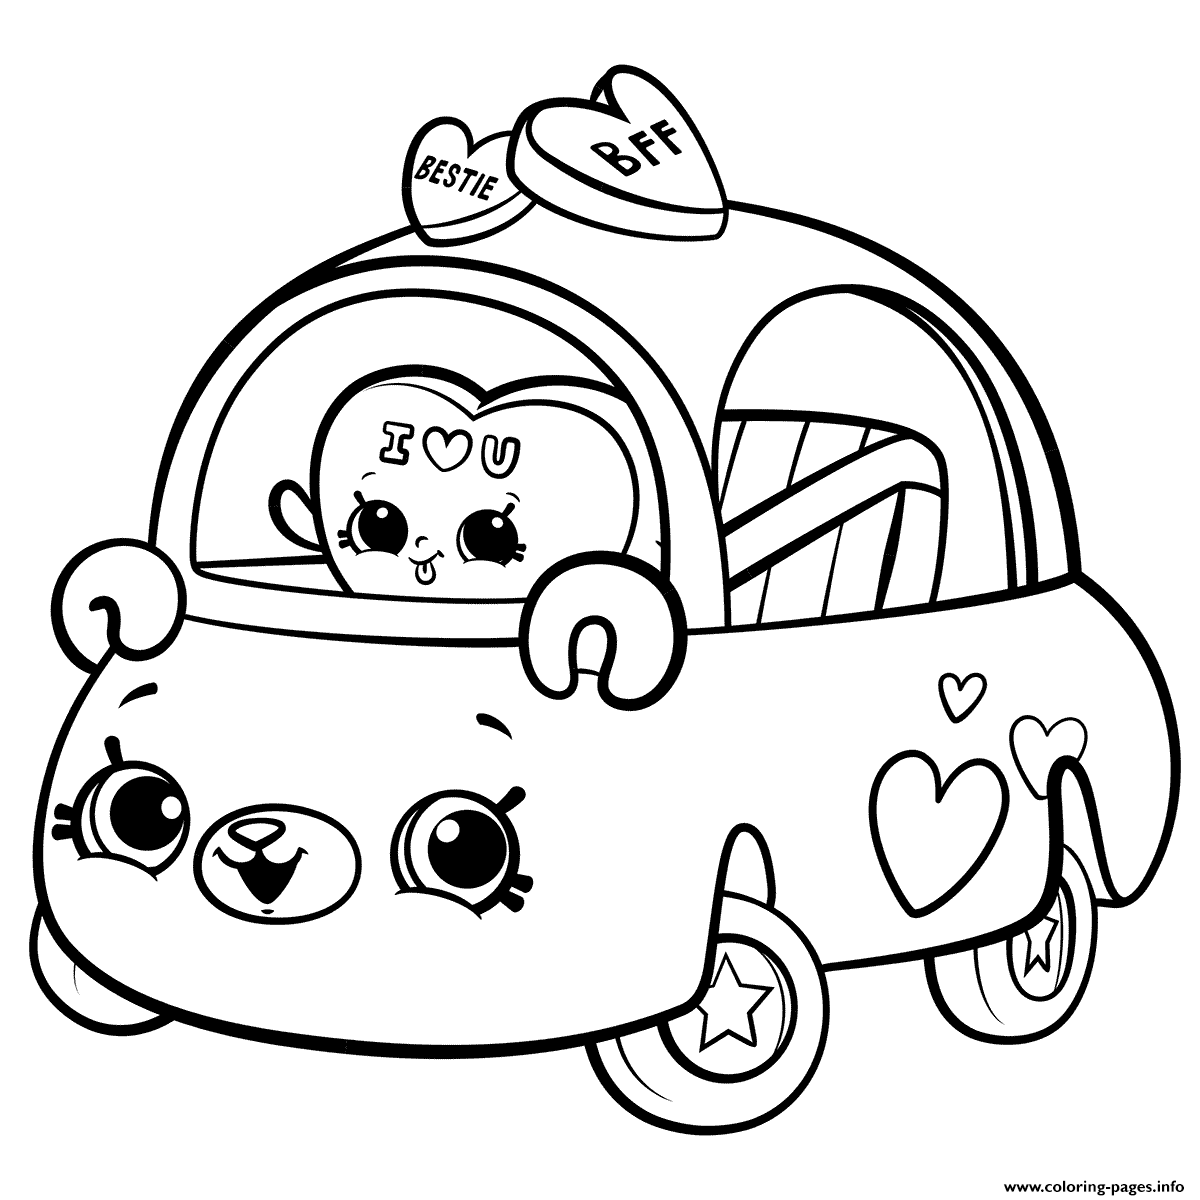 Print Cutie Cars For Girls Coloring Pages Coloring Pages For Girls Cars Coloring Pages Cute Coloring Pages